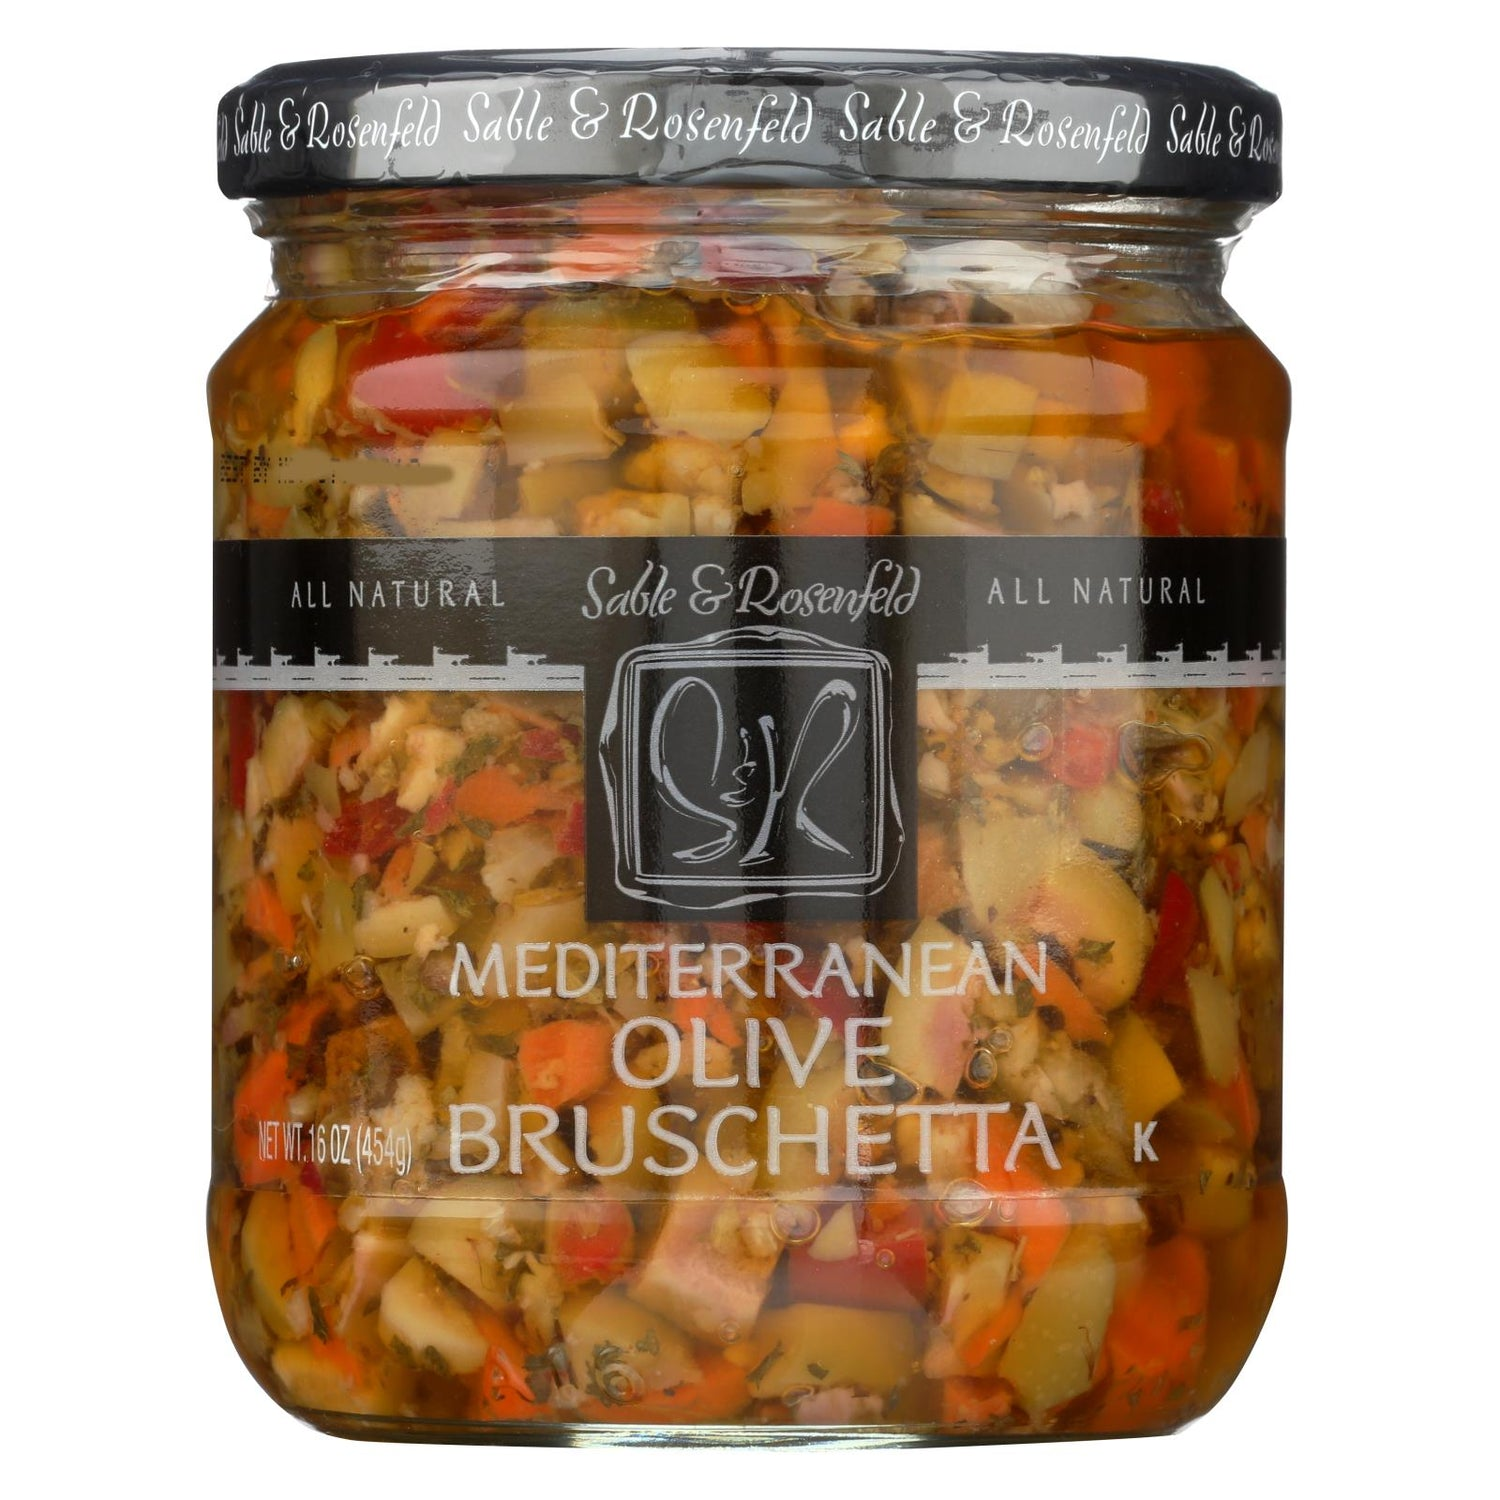 Sable And Rosenfeld Olive Bruschetta - Mediterranean - Case Of 6 - 16 Oz.